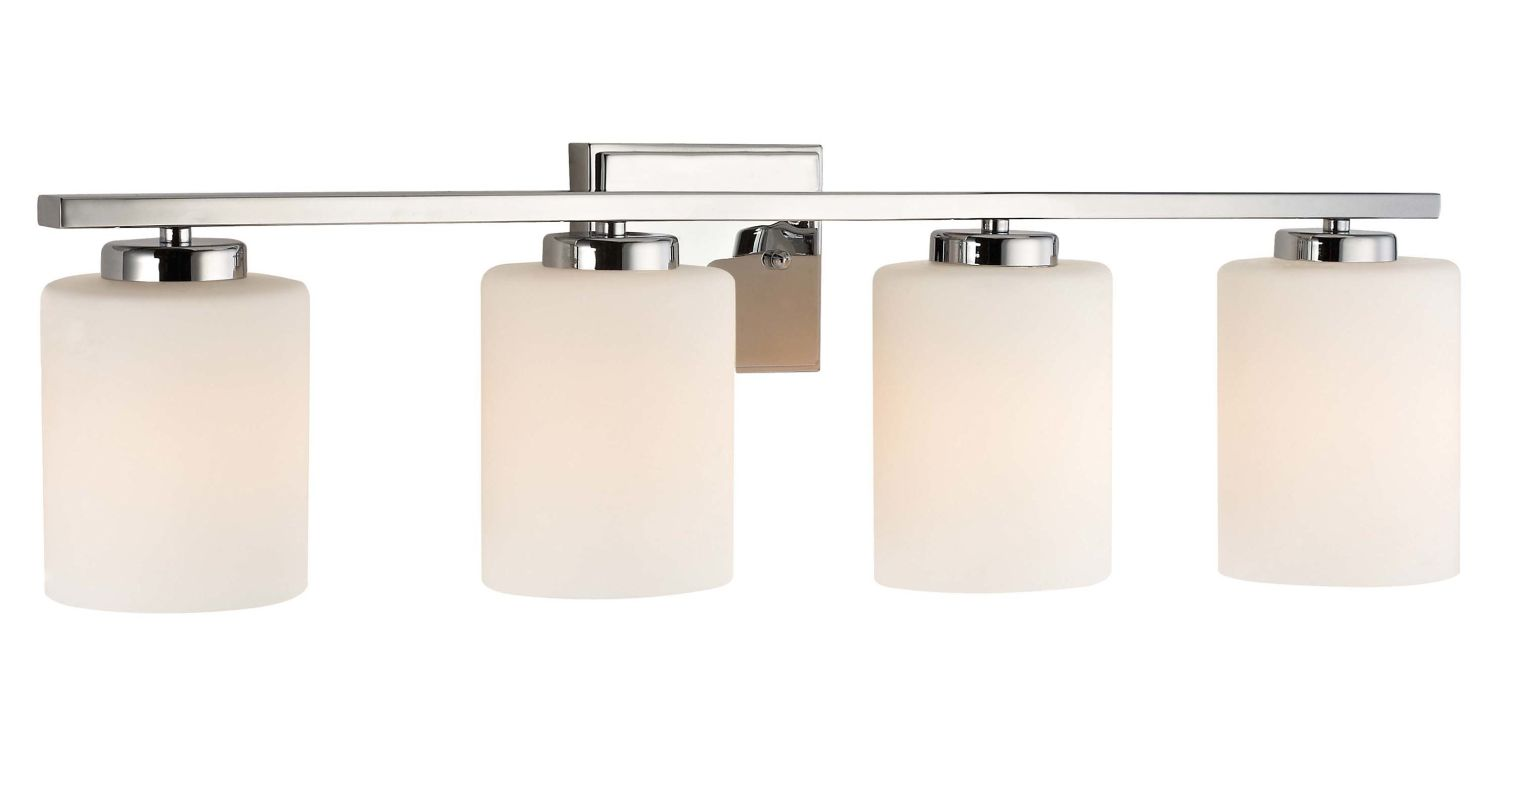 Vanity Light Height : Dolan Designs 3884-26 Chrome 4 Light 7.75